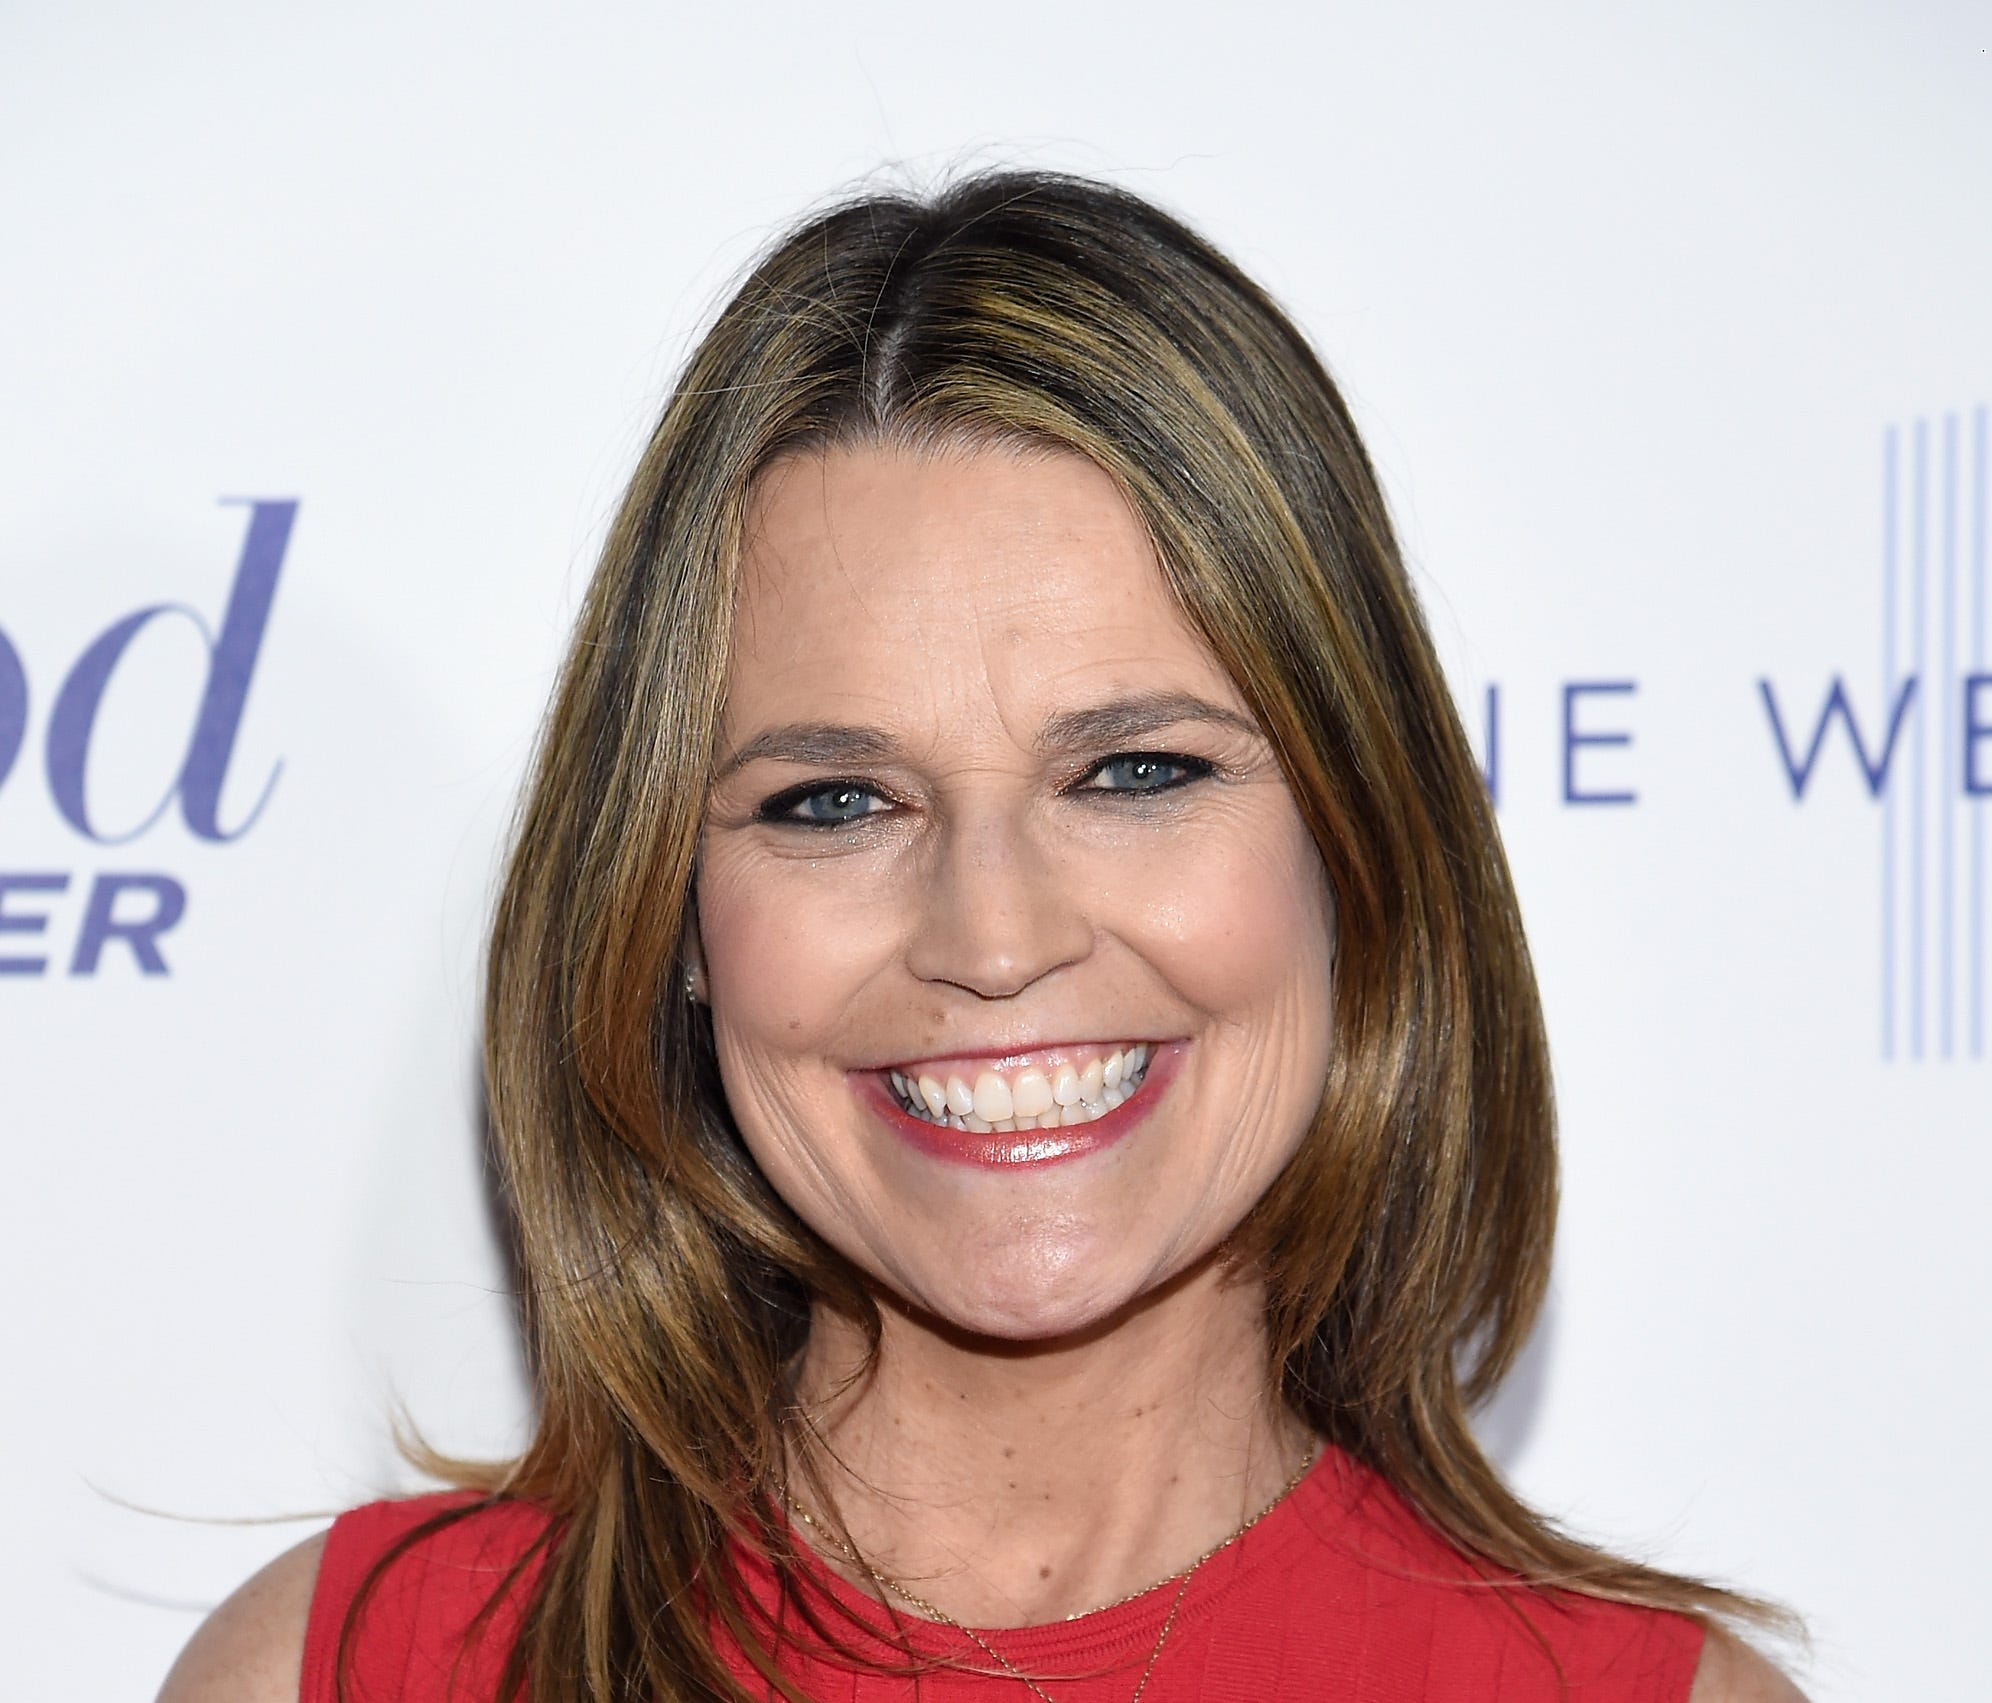 Savannah Guthrie apologized for her live TV swear on Wednesday.